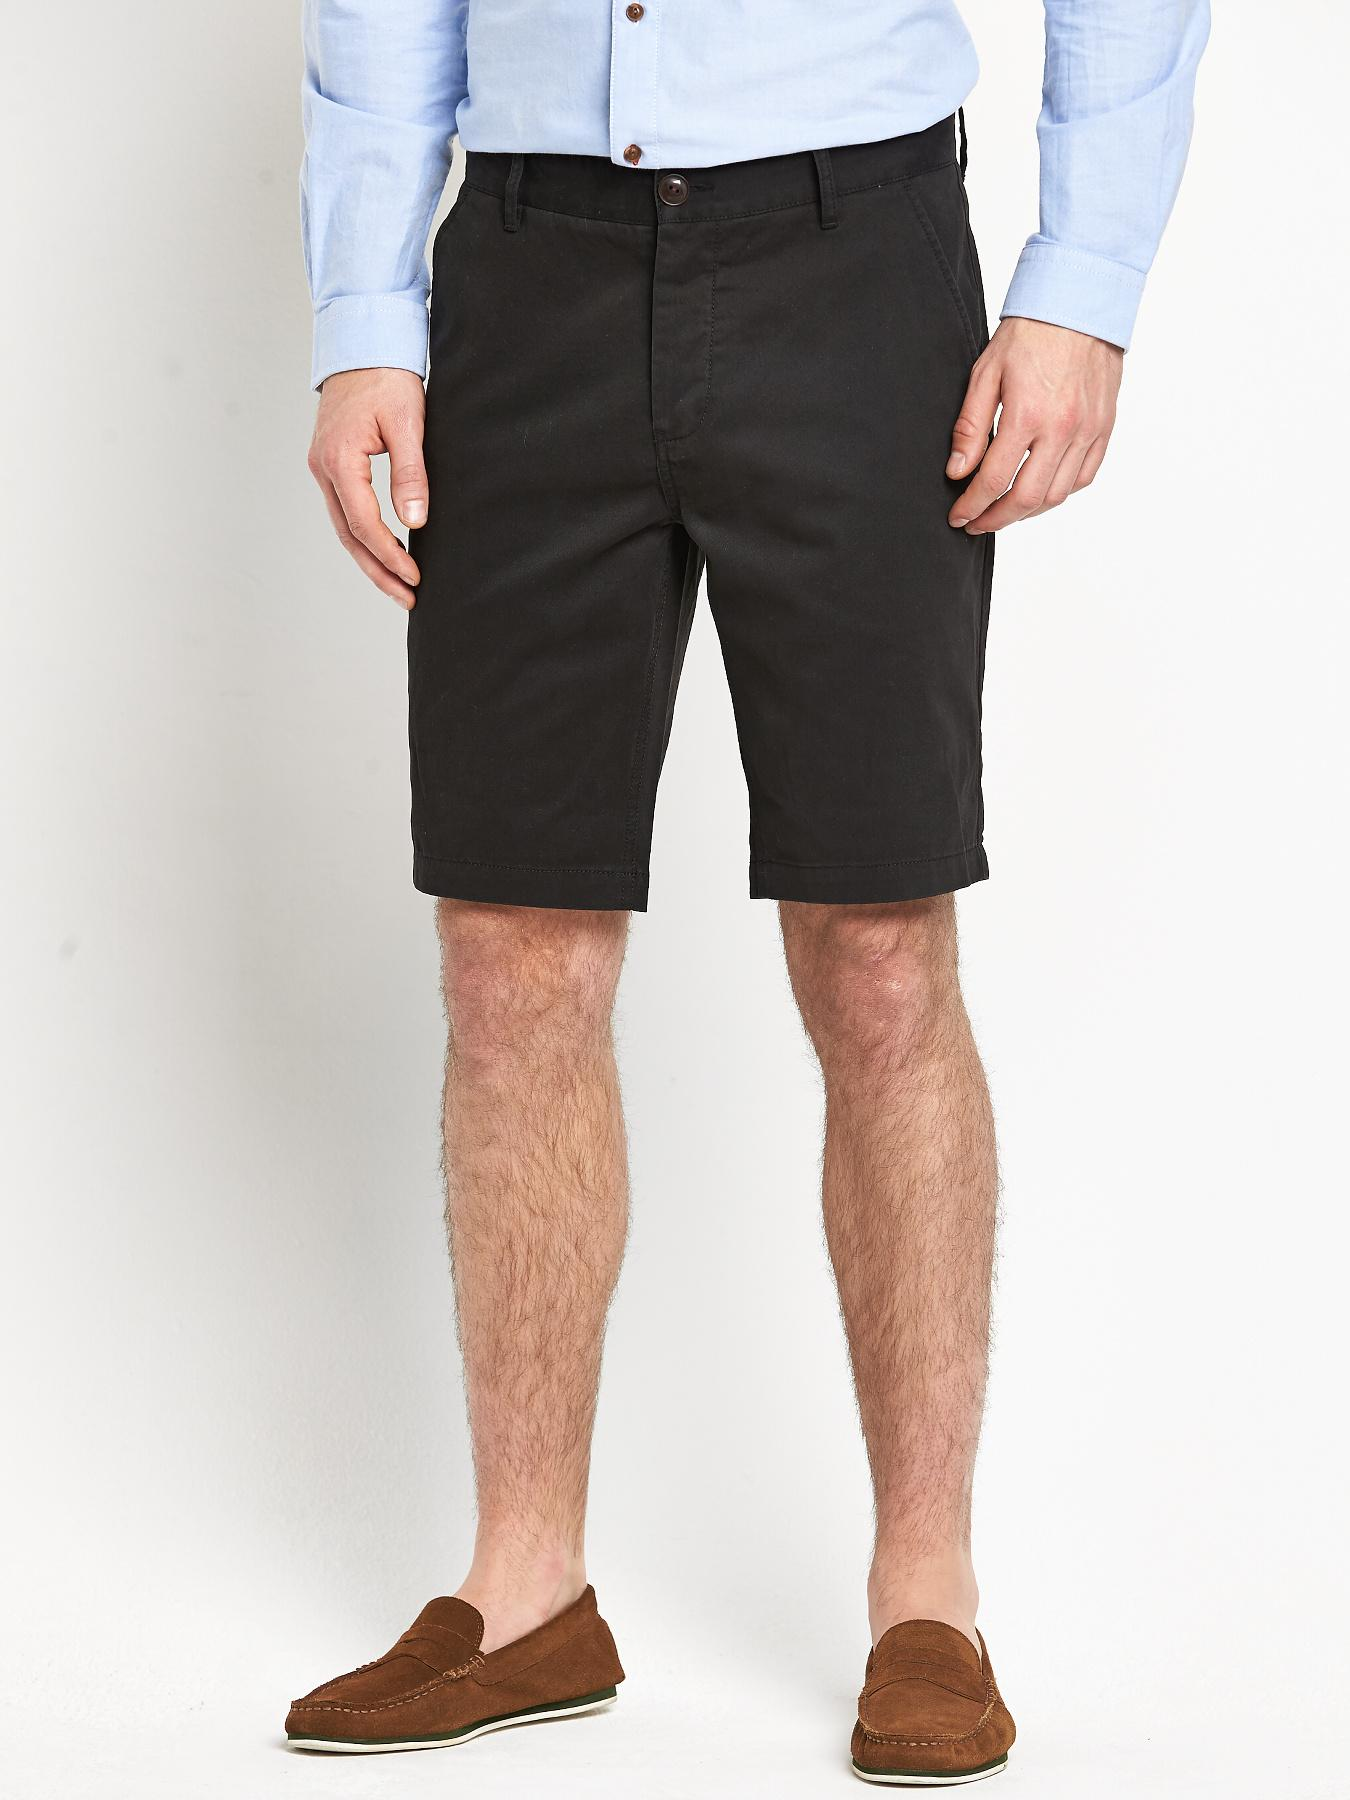 Mens Chino Shorts, Black at Littlewoods